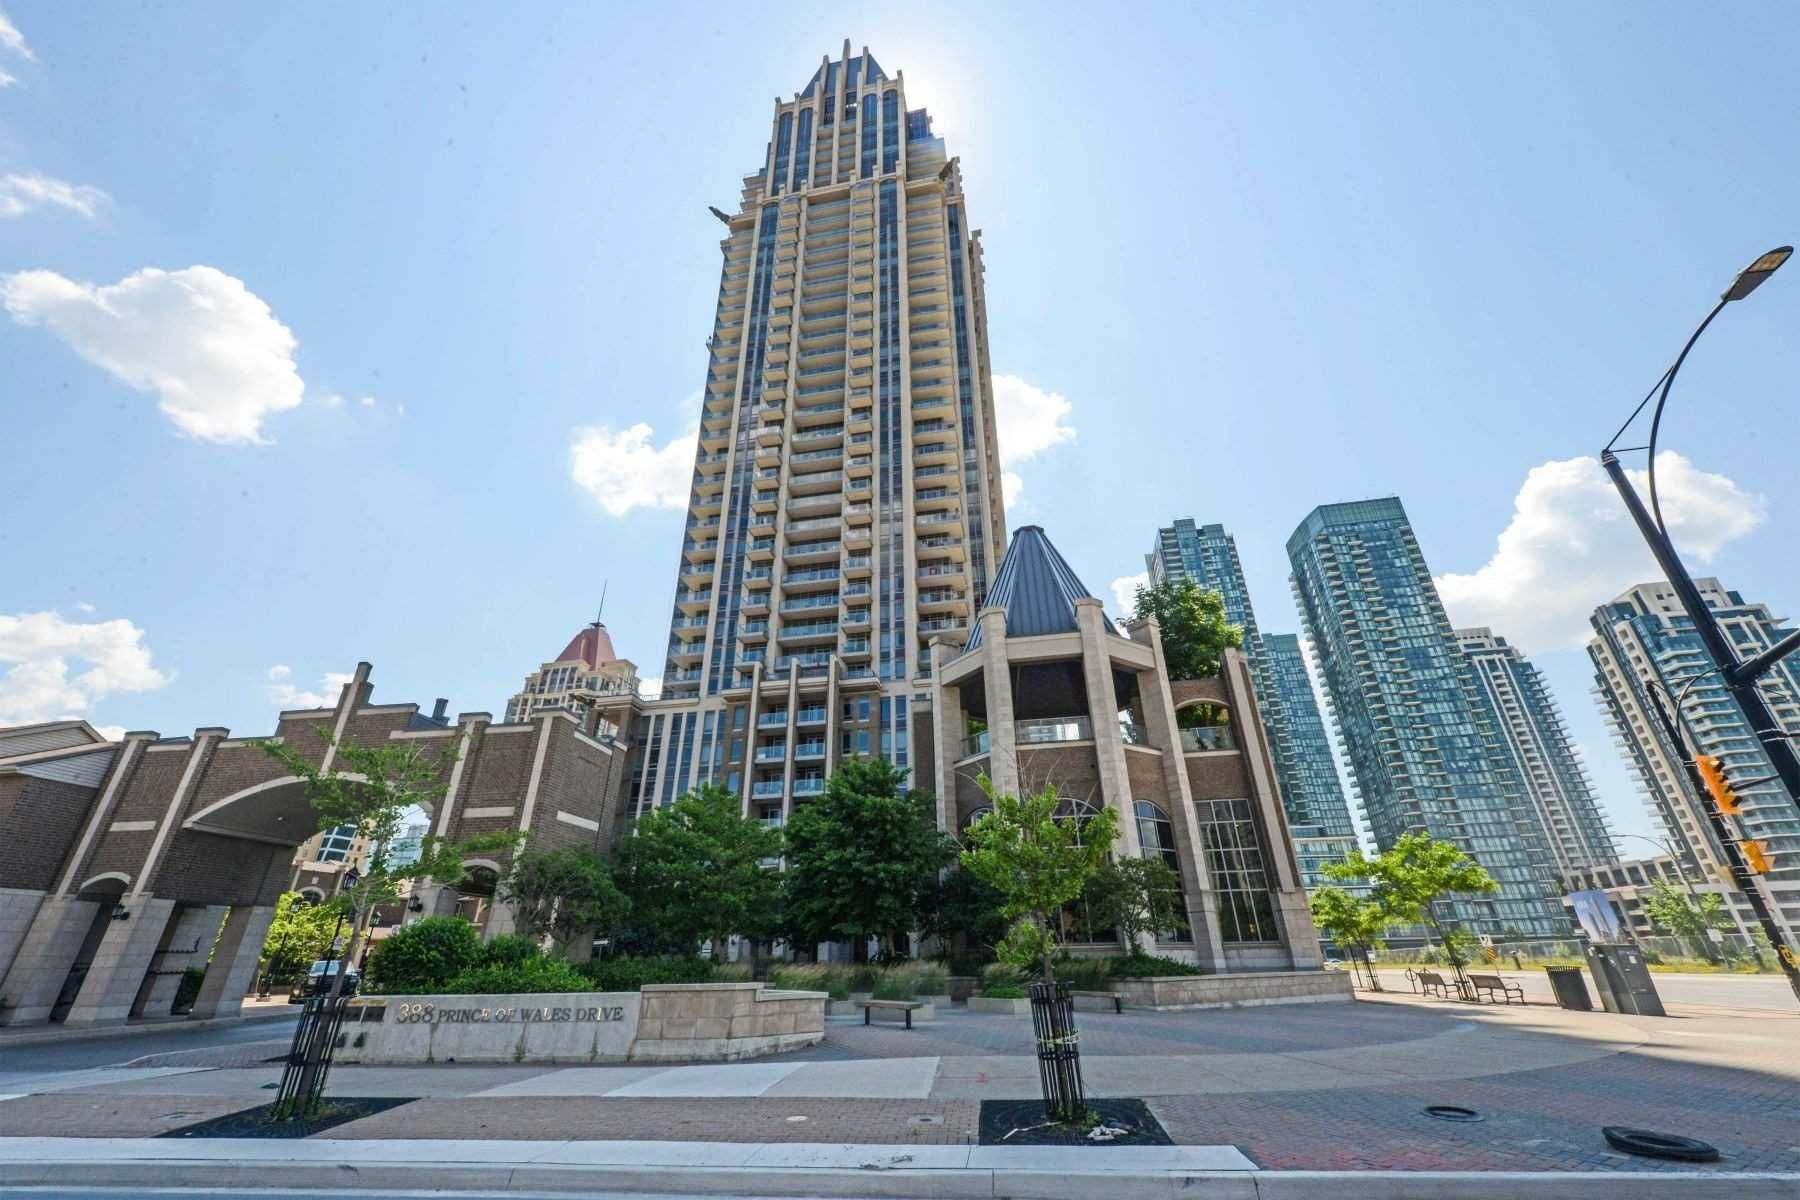 388 Prince Of Wales Dr, unit 710 for sale in Toronto - image #2